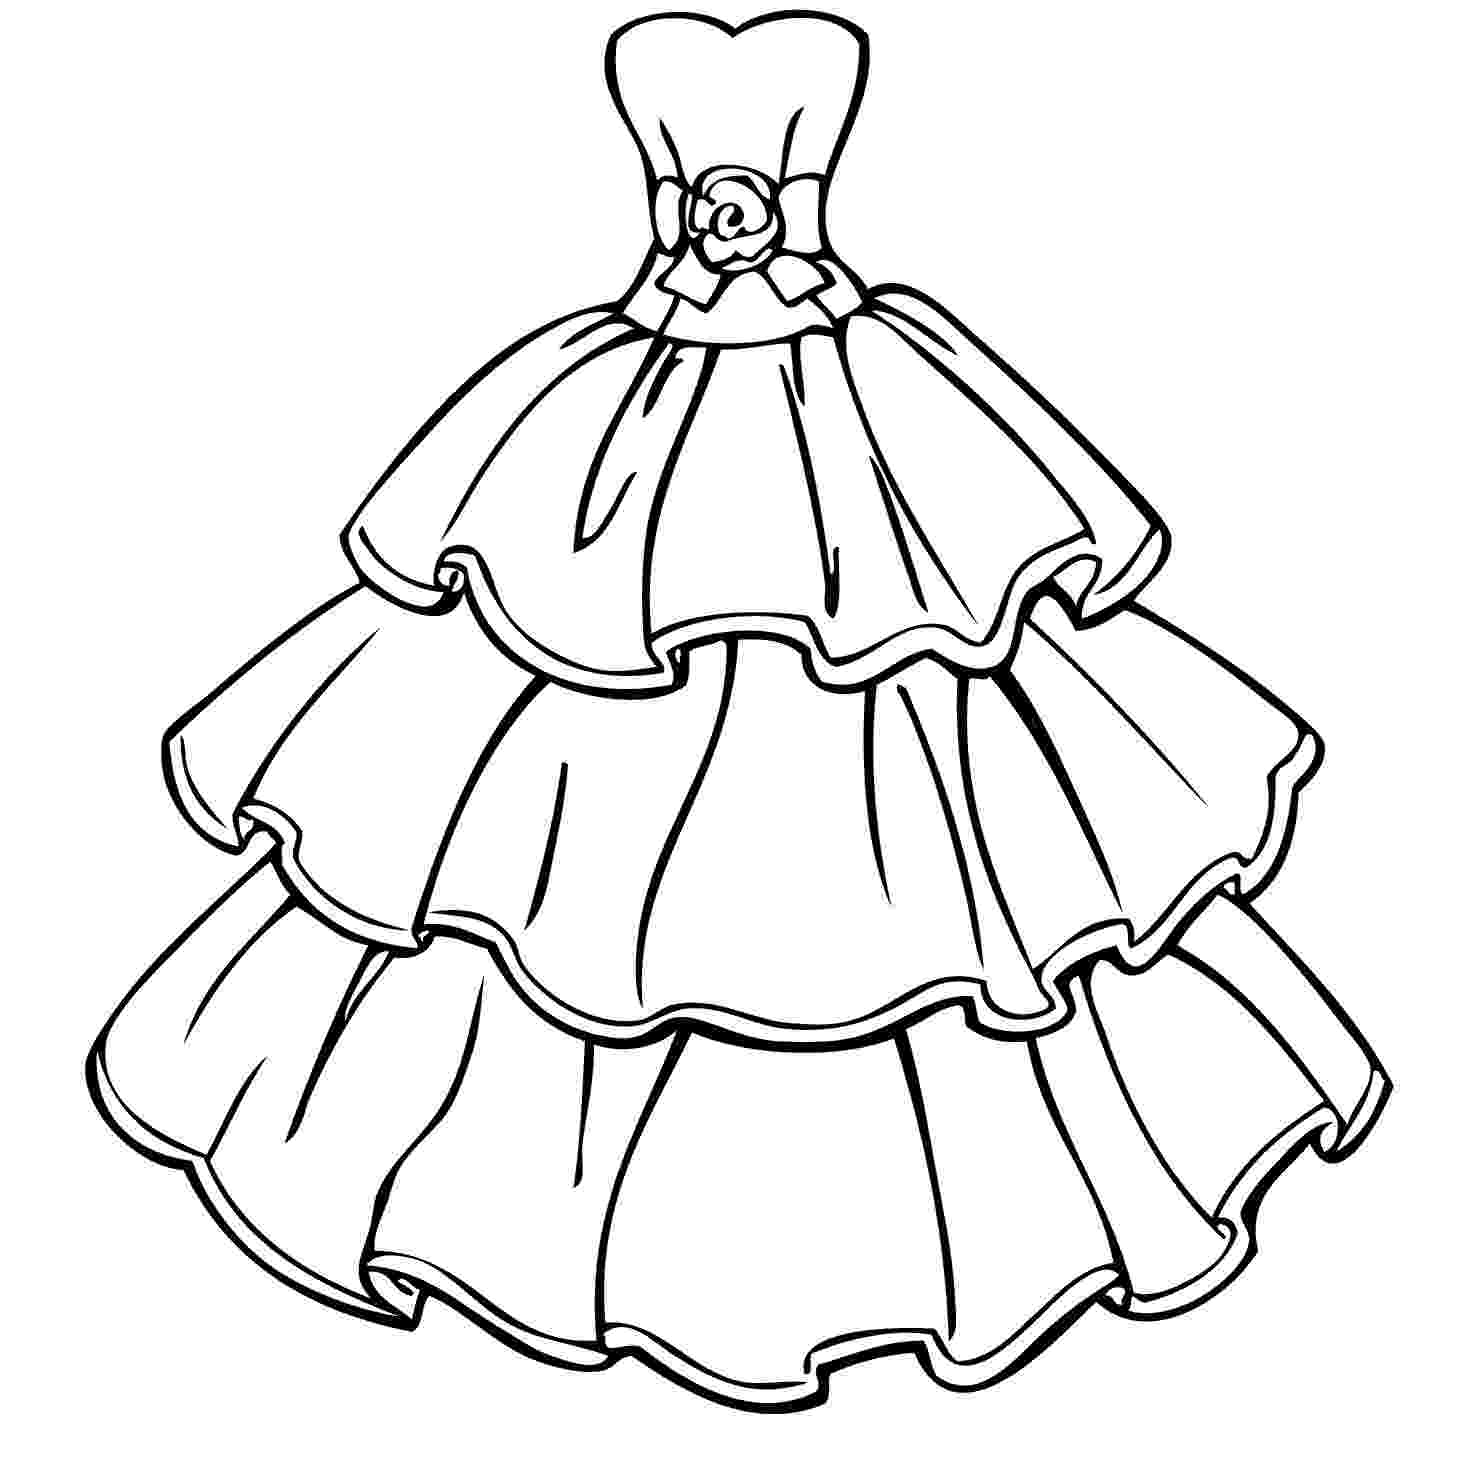 coloring page dress dress coloring pages to download and print for free page coloring dress